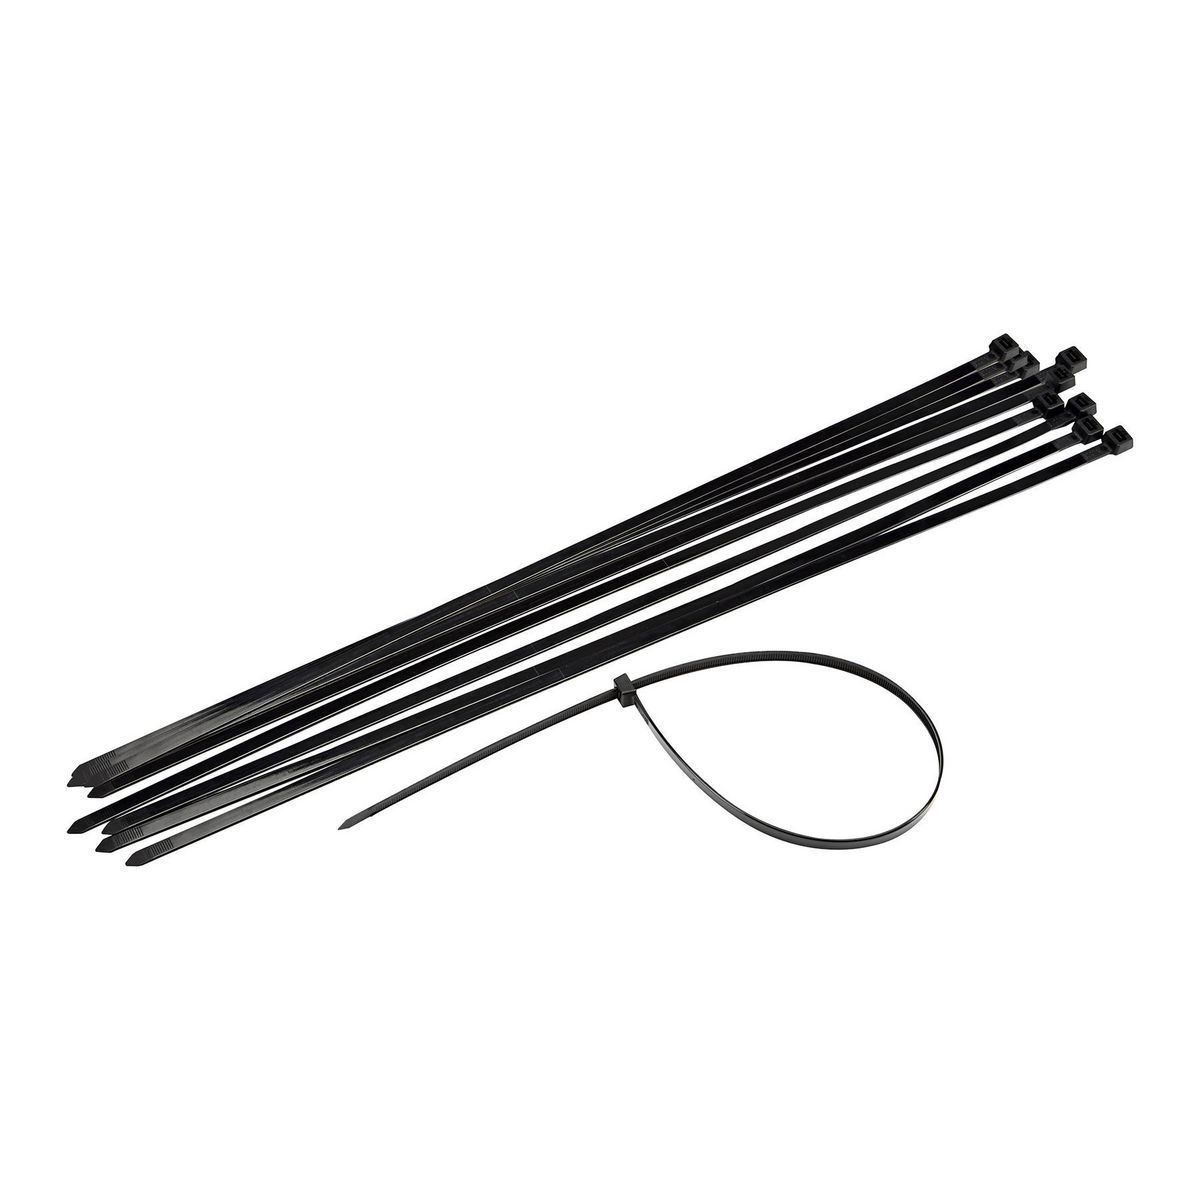 24 In Heavy Duty Cable Ties 10 Pk